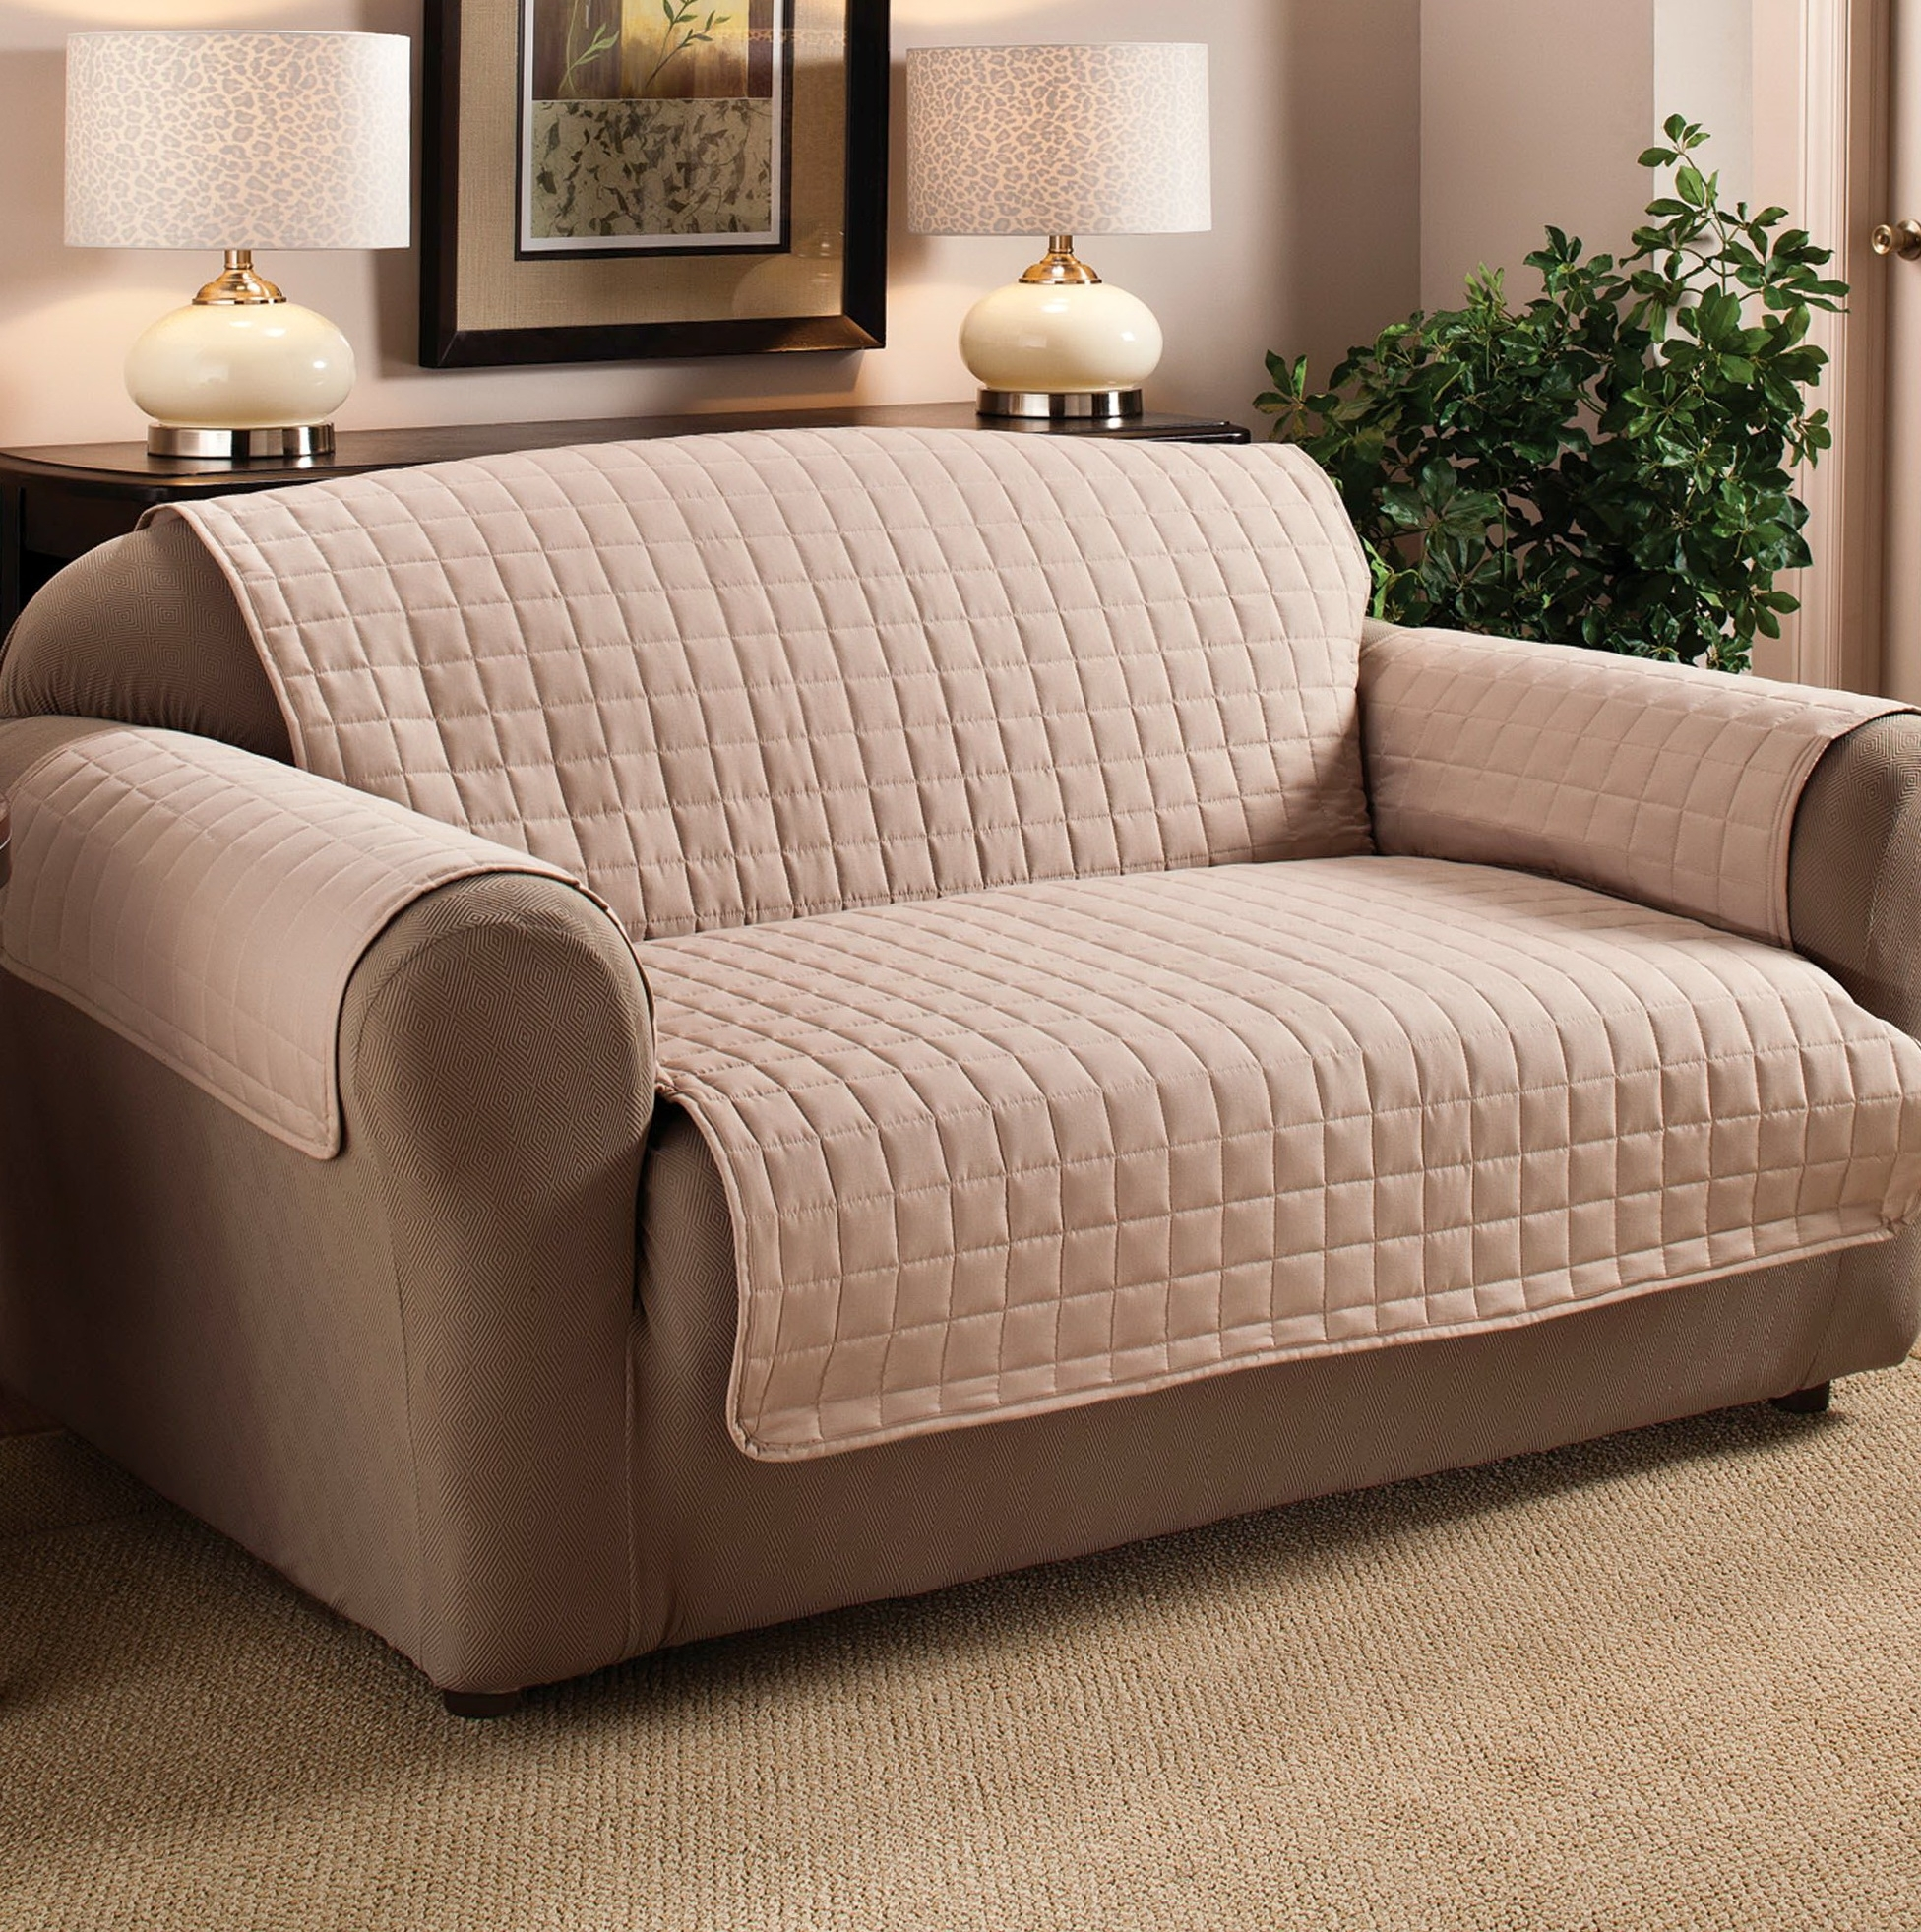 Well Known Chaise Sofa Covers Throughout Lovely Chaise Lounge Sofa Covers 92 Sofas And Couches Ideas With (View 15 of 15)